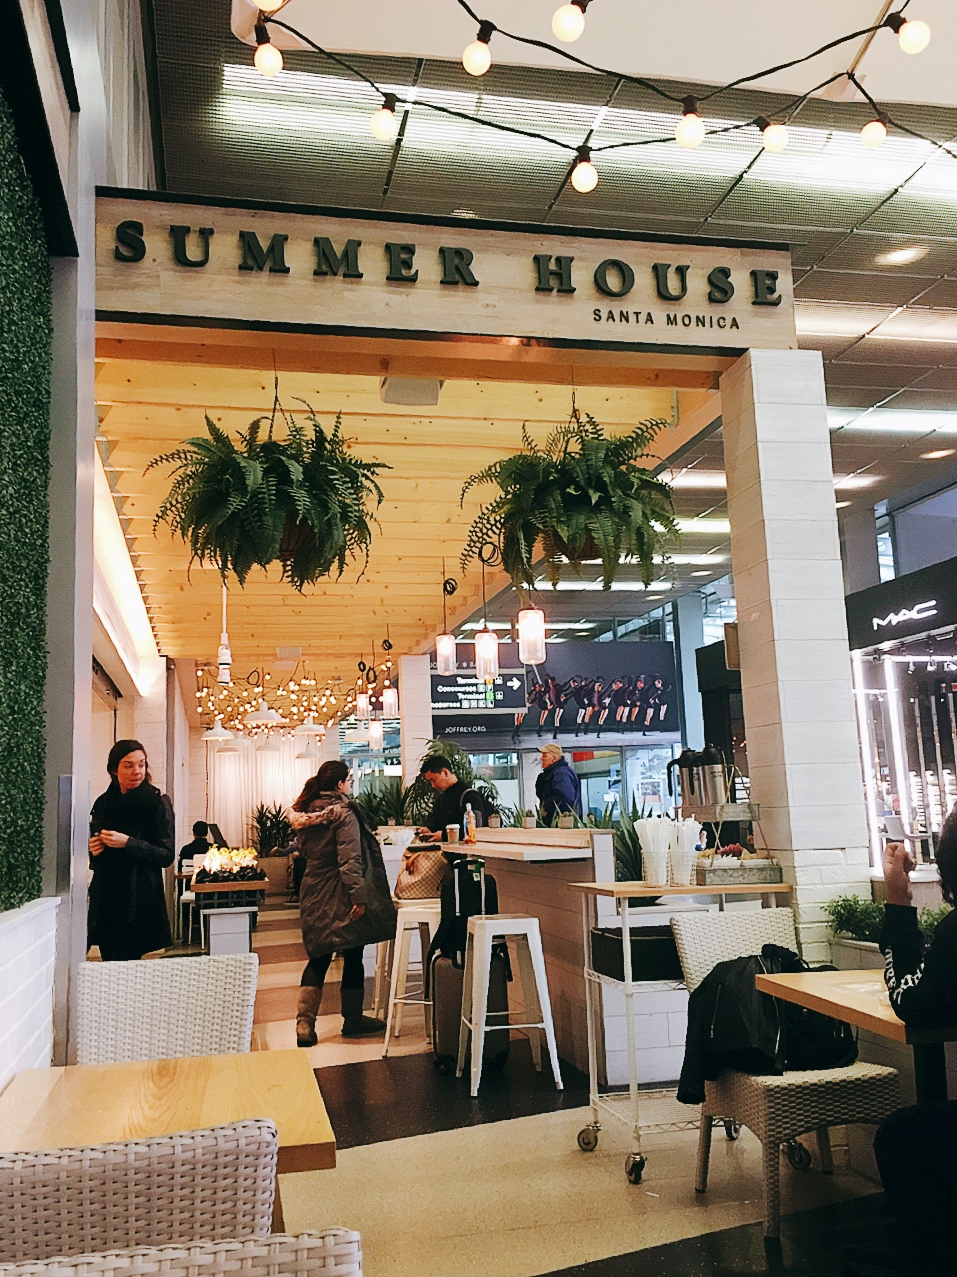 It Was A Nice Little Oasis In The Busy Chicago Airport. I Think They Did  Great Job At The Design, It Certainly Transported Me To A Cute Summer House,  ...